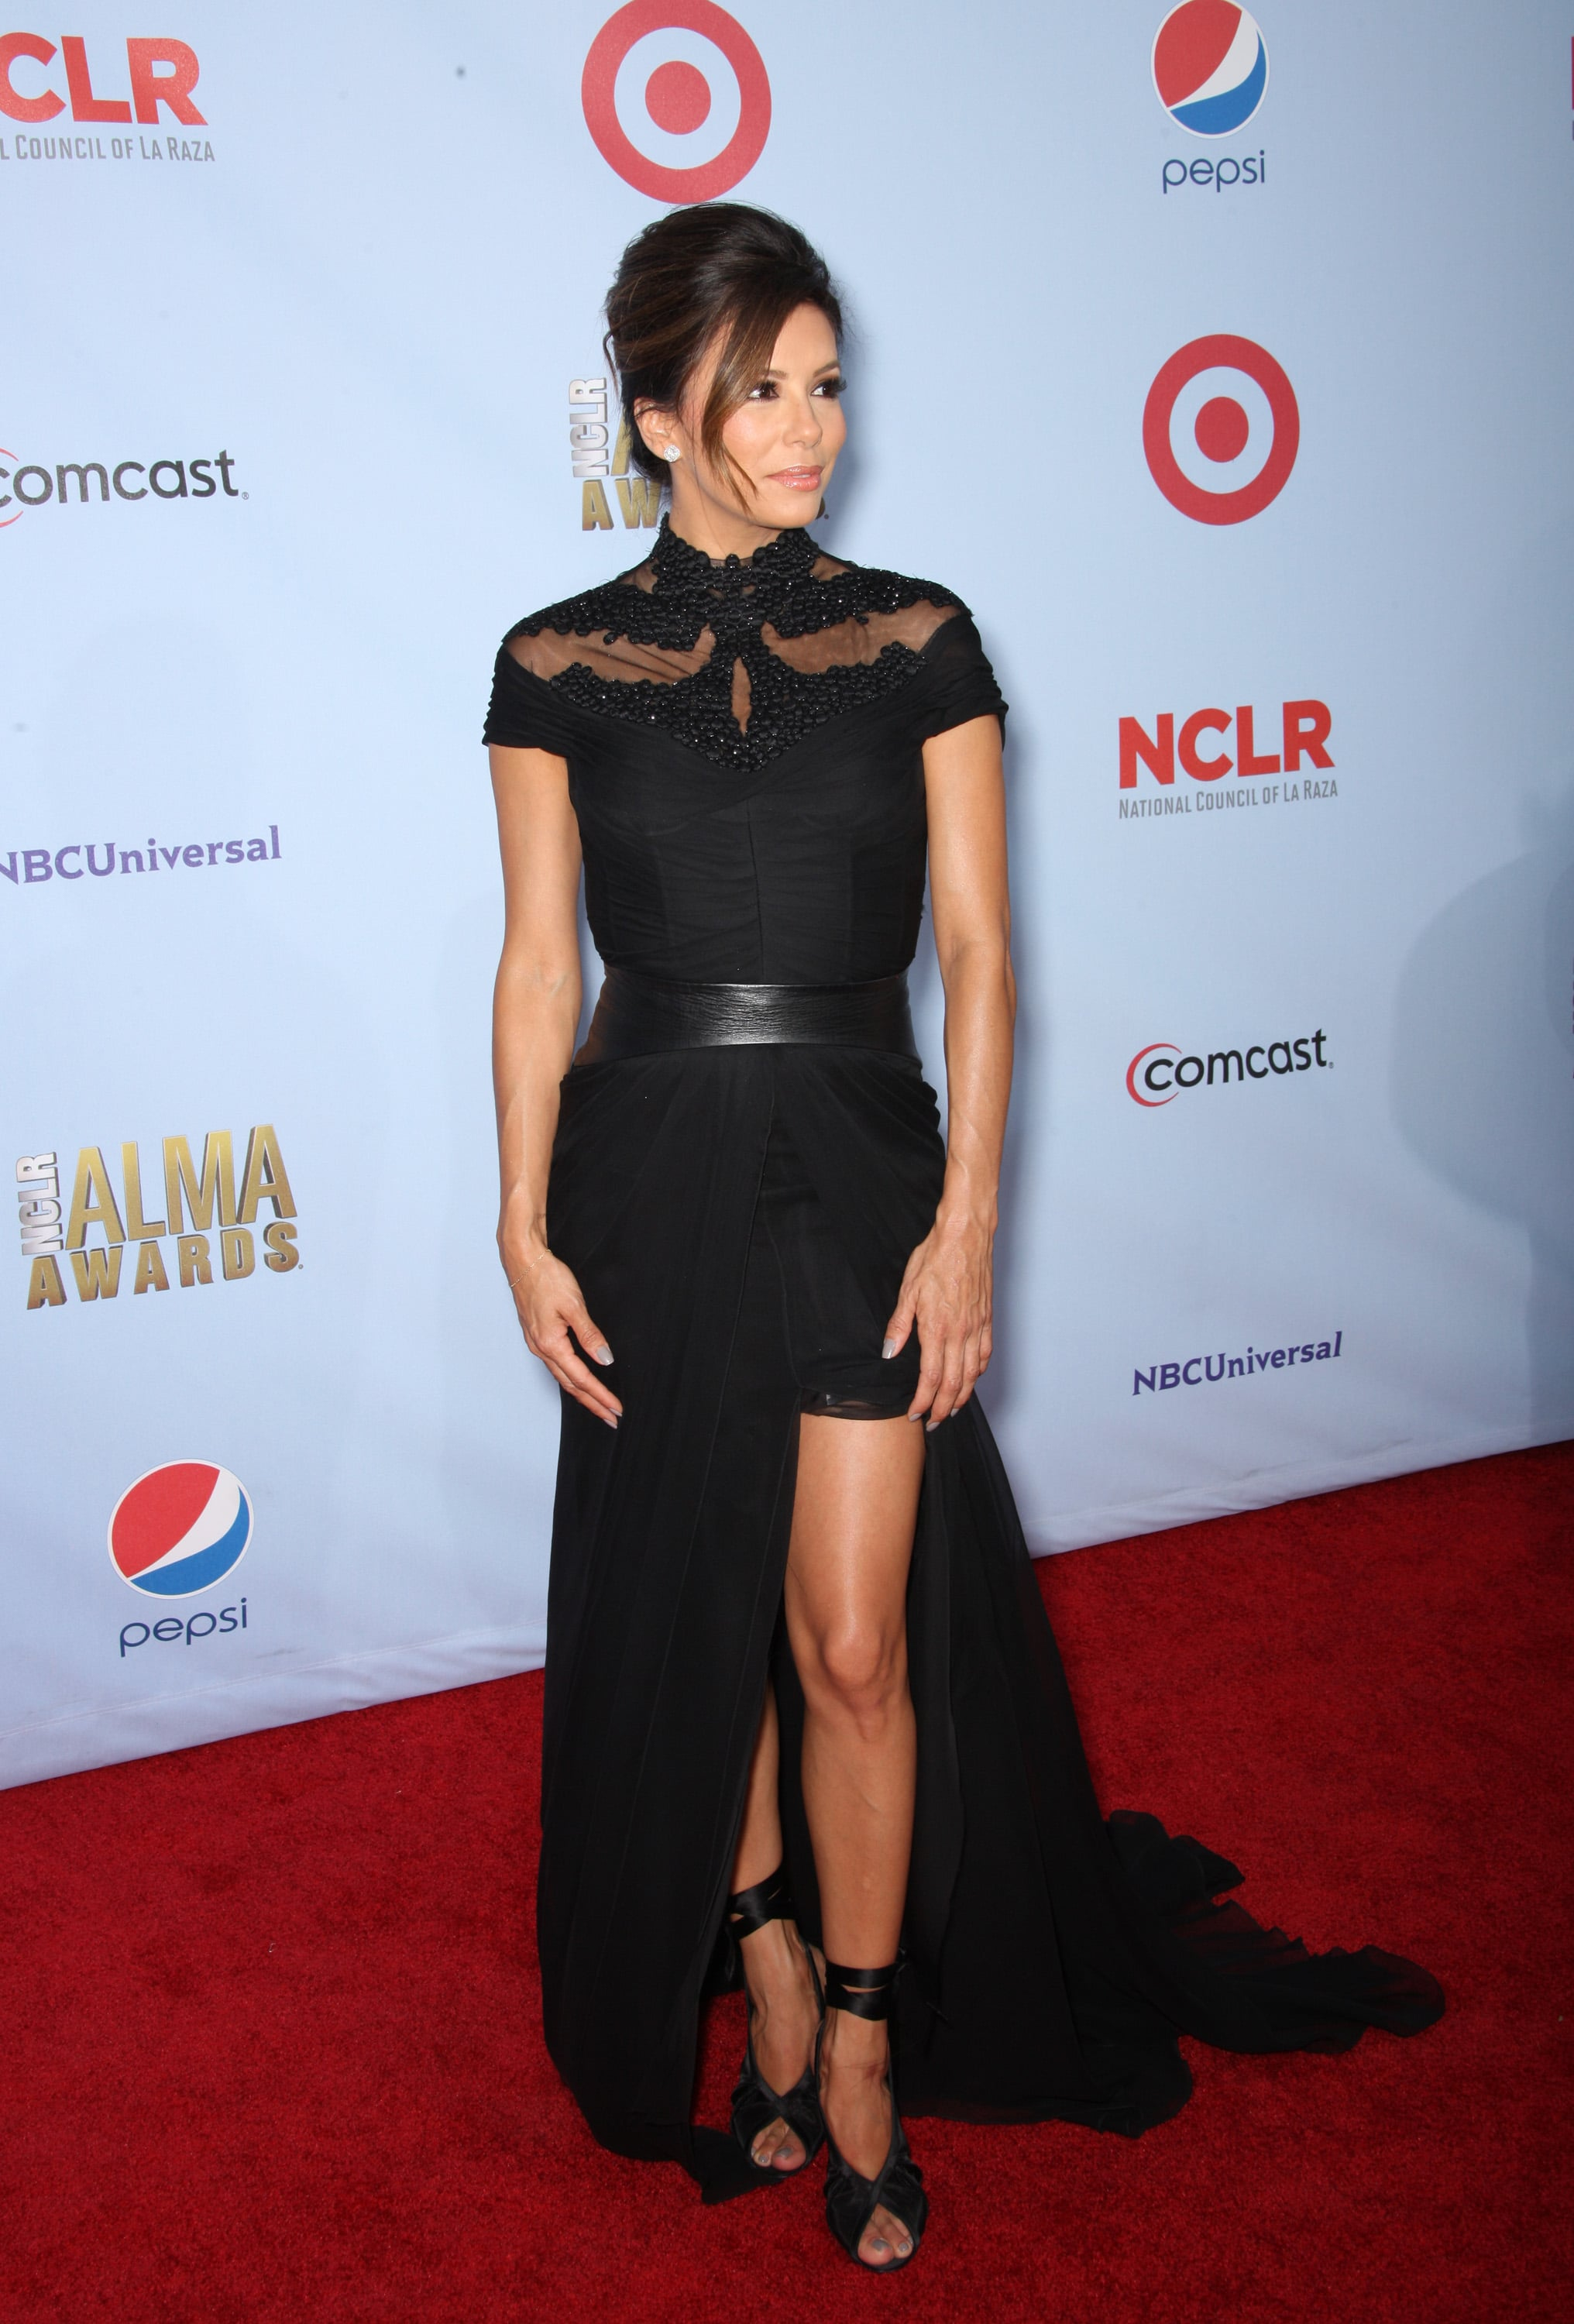 Eva Longoria arrived at the 2012 NCLR ALMA Awards at Pasadena Civic Auditorium.